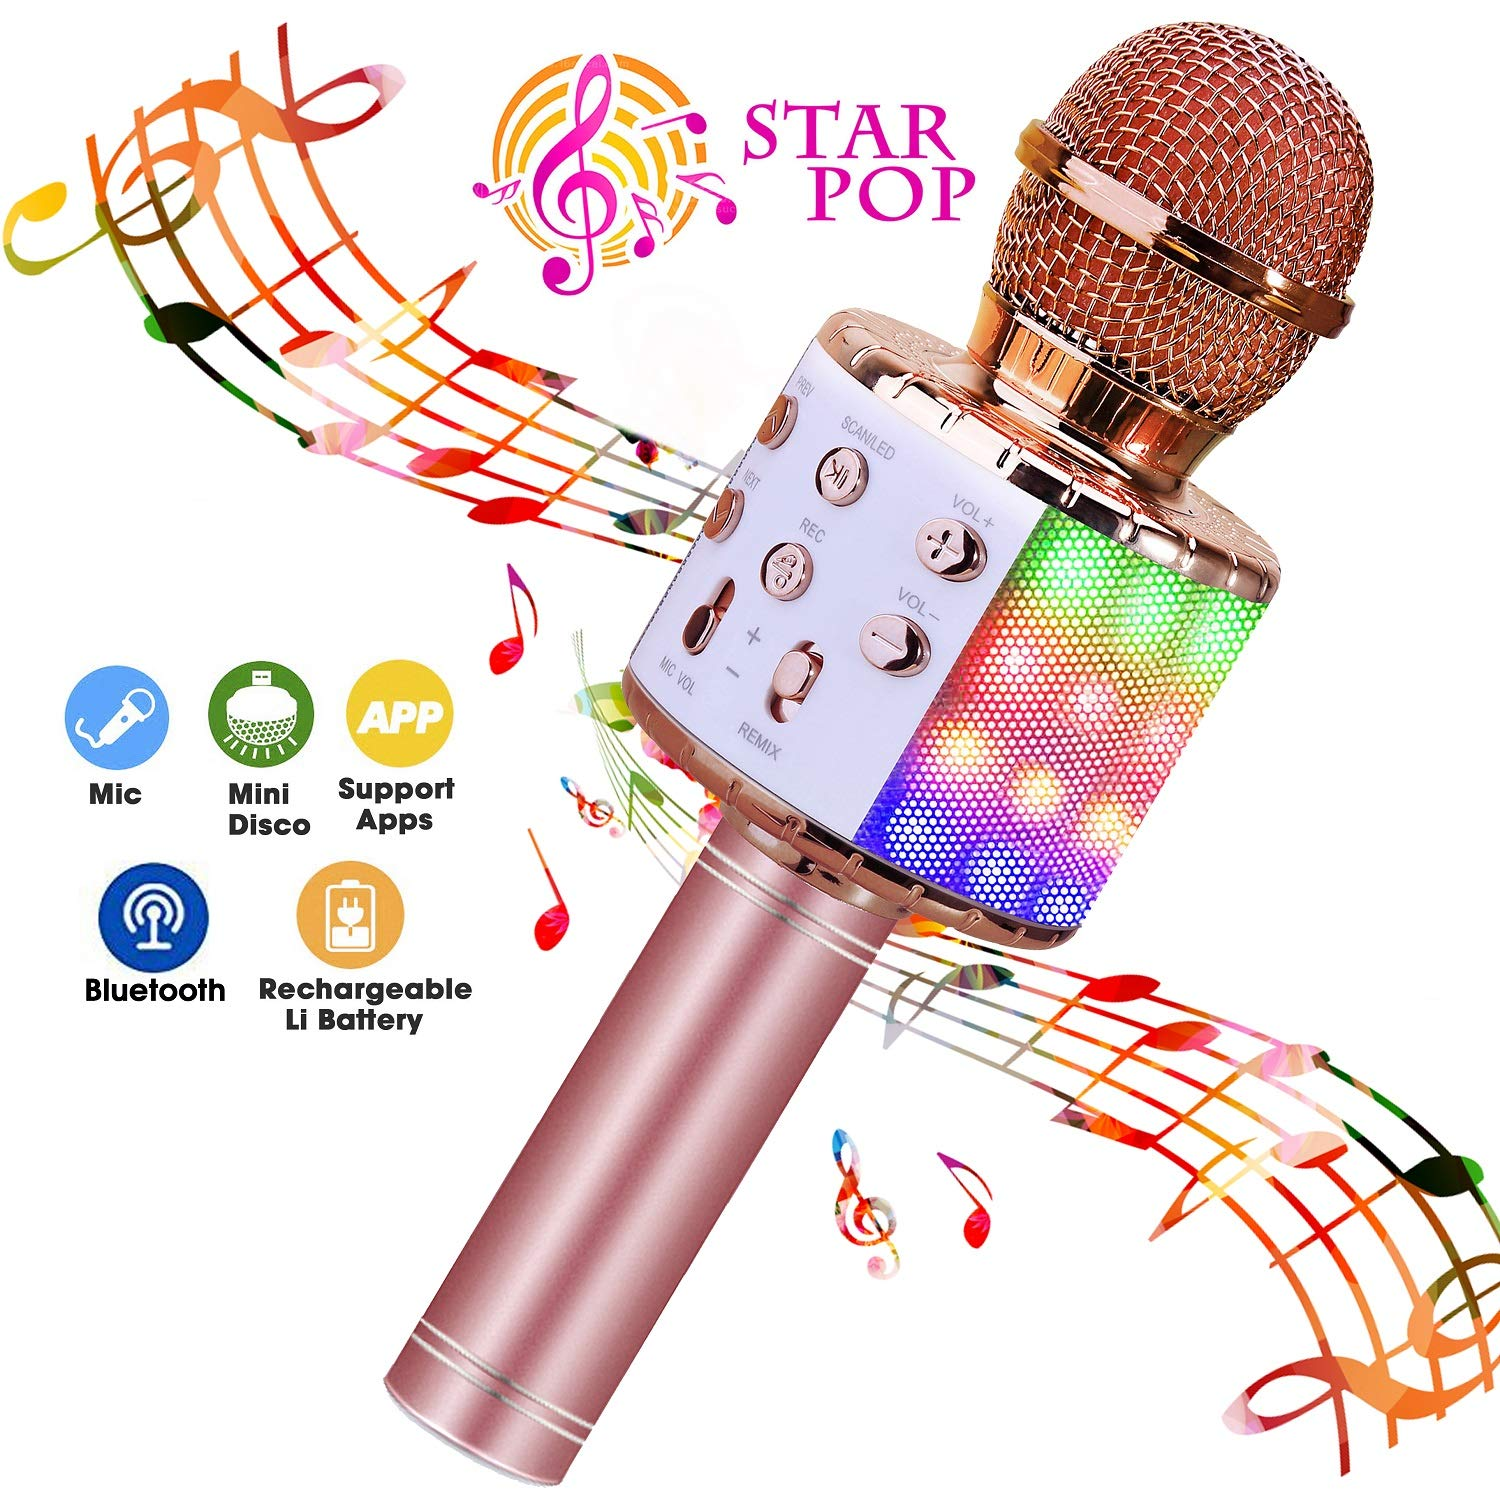 BlueFire Wireless 4 in 1 Bluetooth Karaoke Microphone, Portable Speaker Machine, Handheld Home KTV Player with Record Function for Android & iOS Devices (Pink) by BlueFire